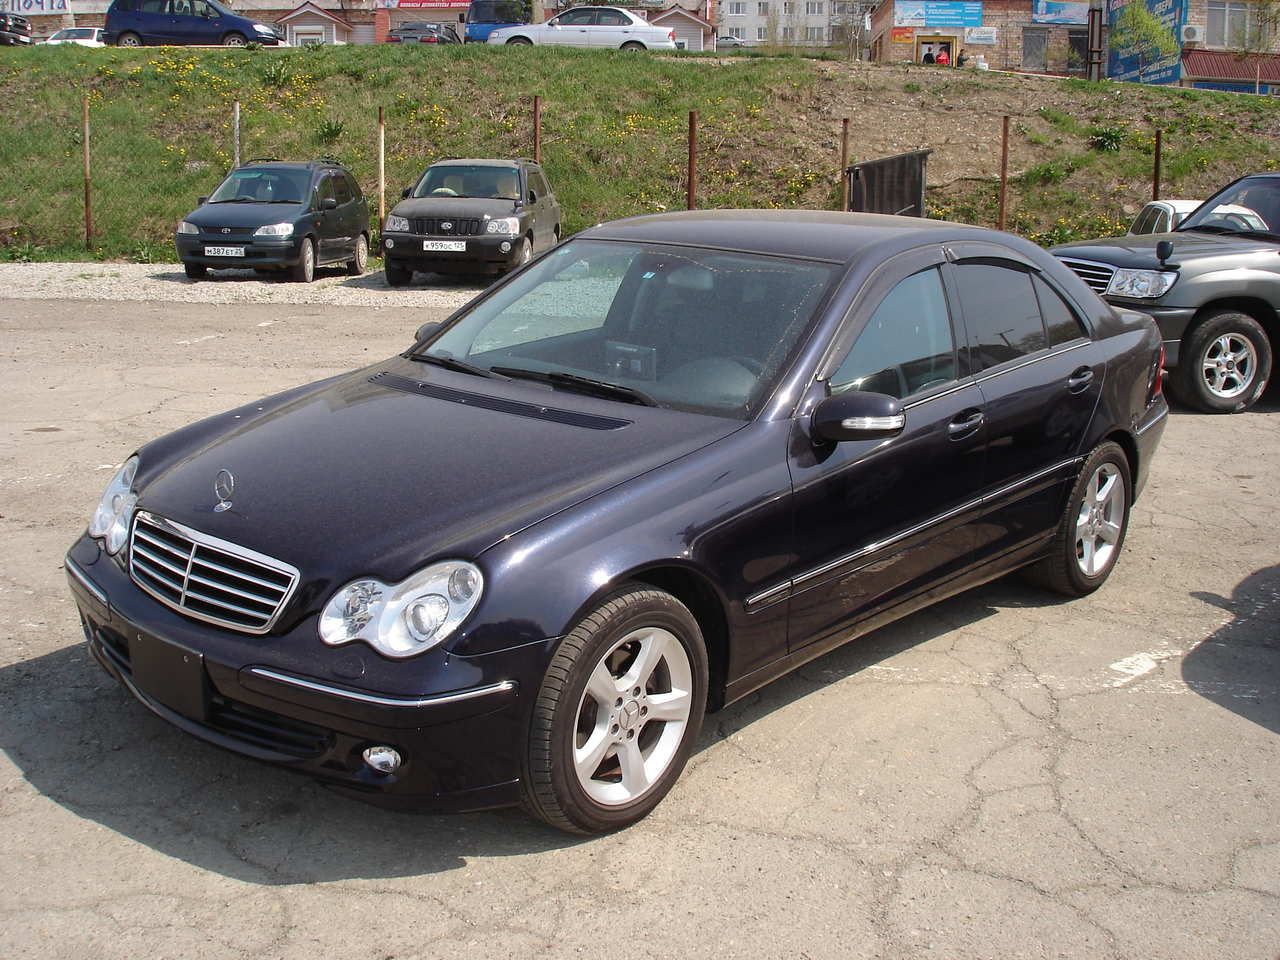 2006 mercedes benz c class photos 2 5 gasoline fr or rr for Mercedes benz c class 2006 for sale